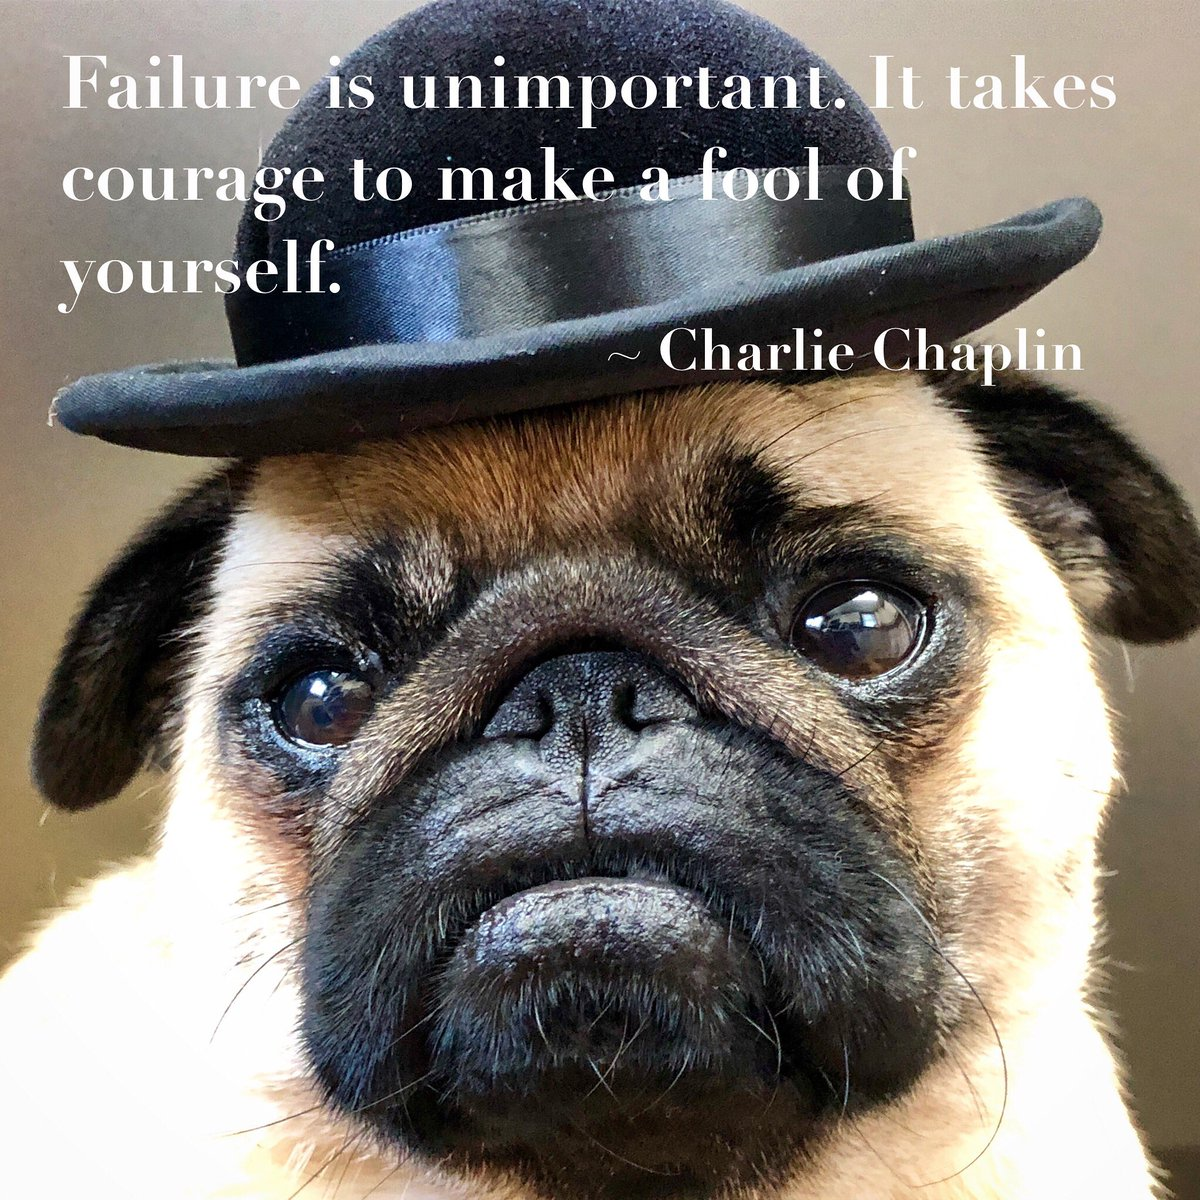 Always be able to laugh at yourself    #wisdomWednesday   #pug #puglife #charliechaplin #wisdom<br>http://pic.twitter.com/x6NebrrAWo